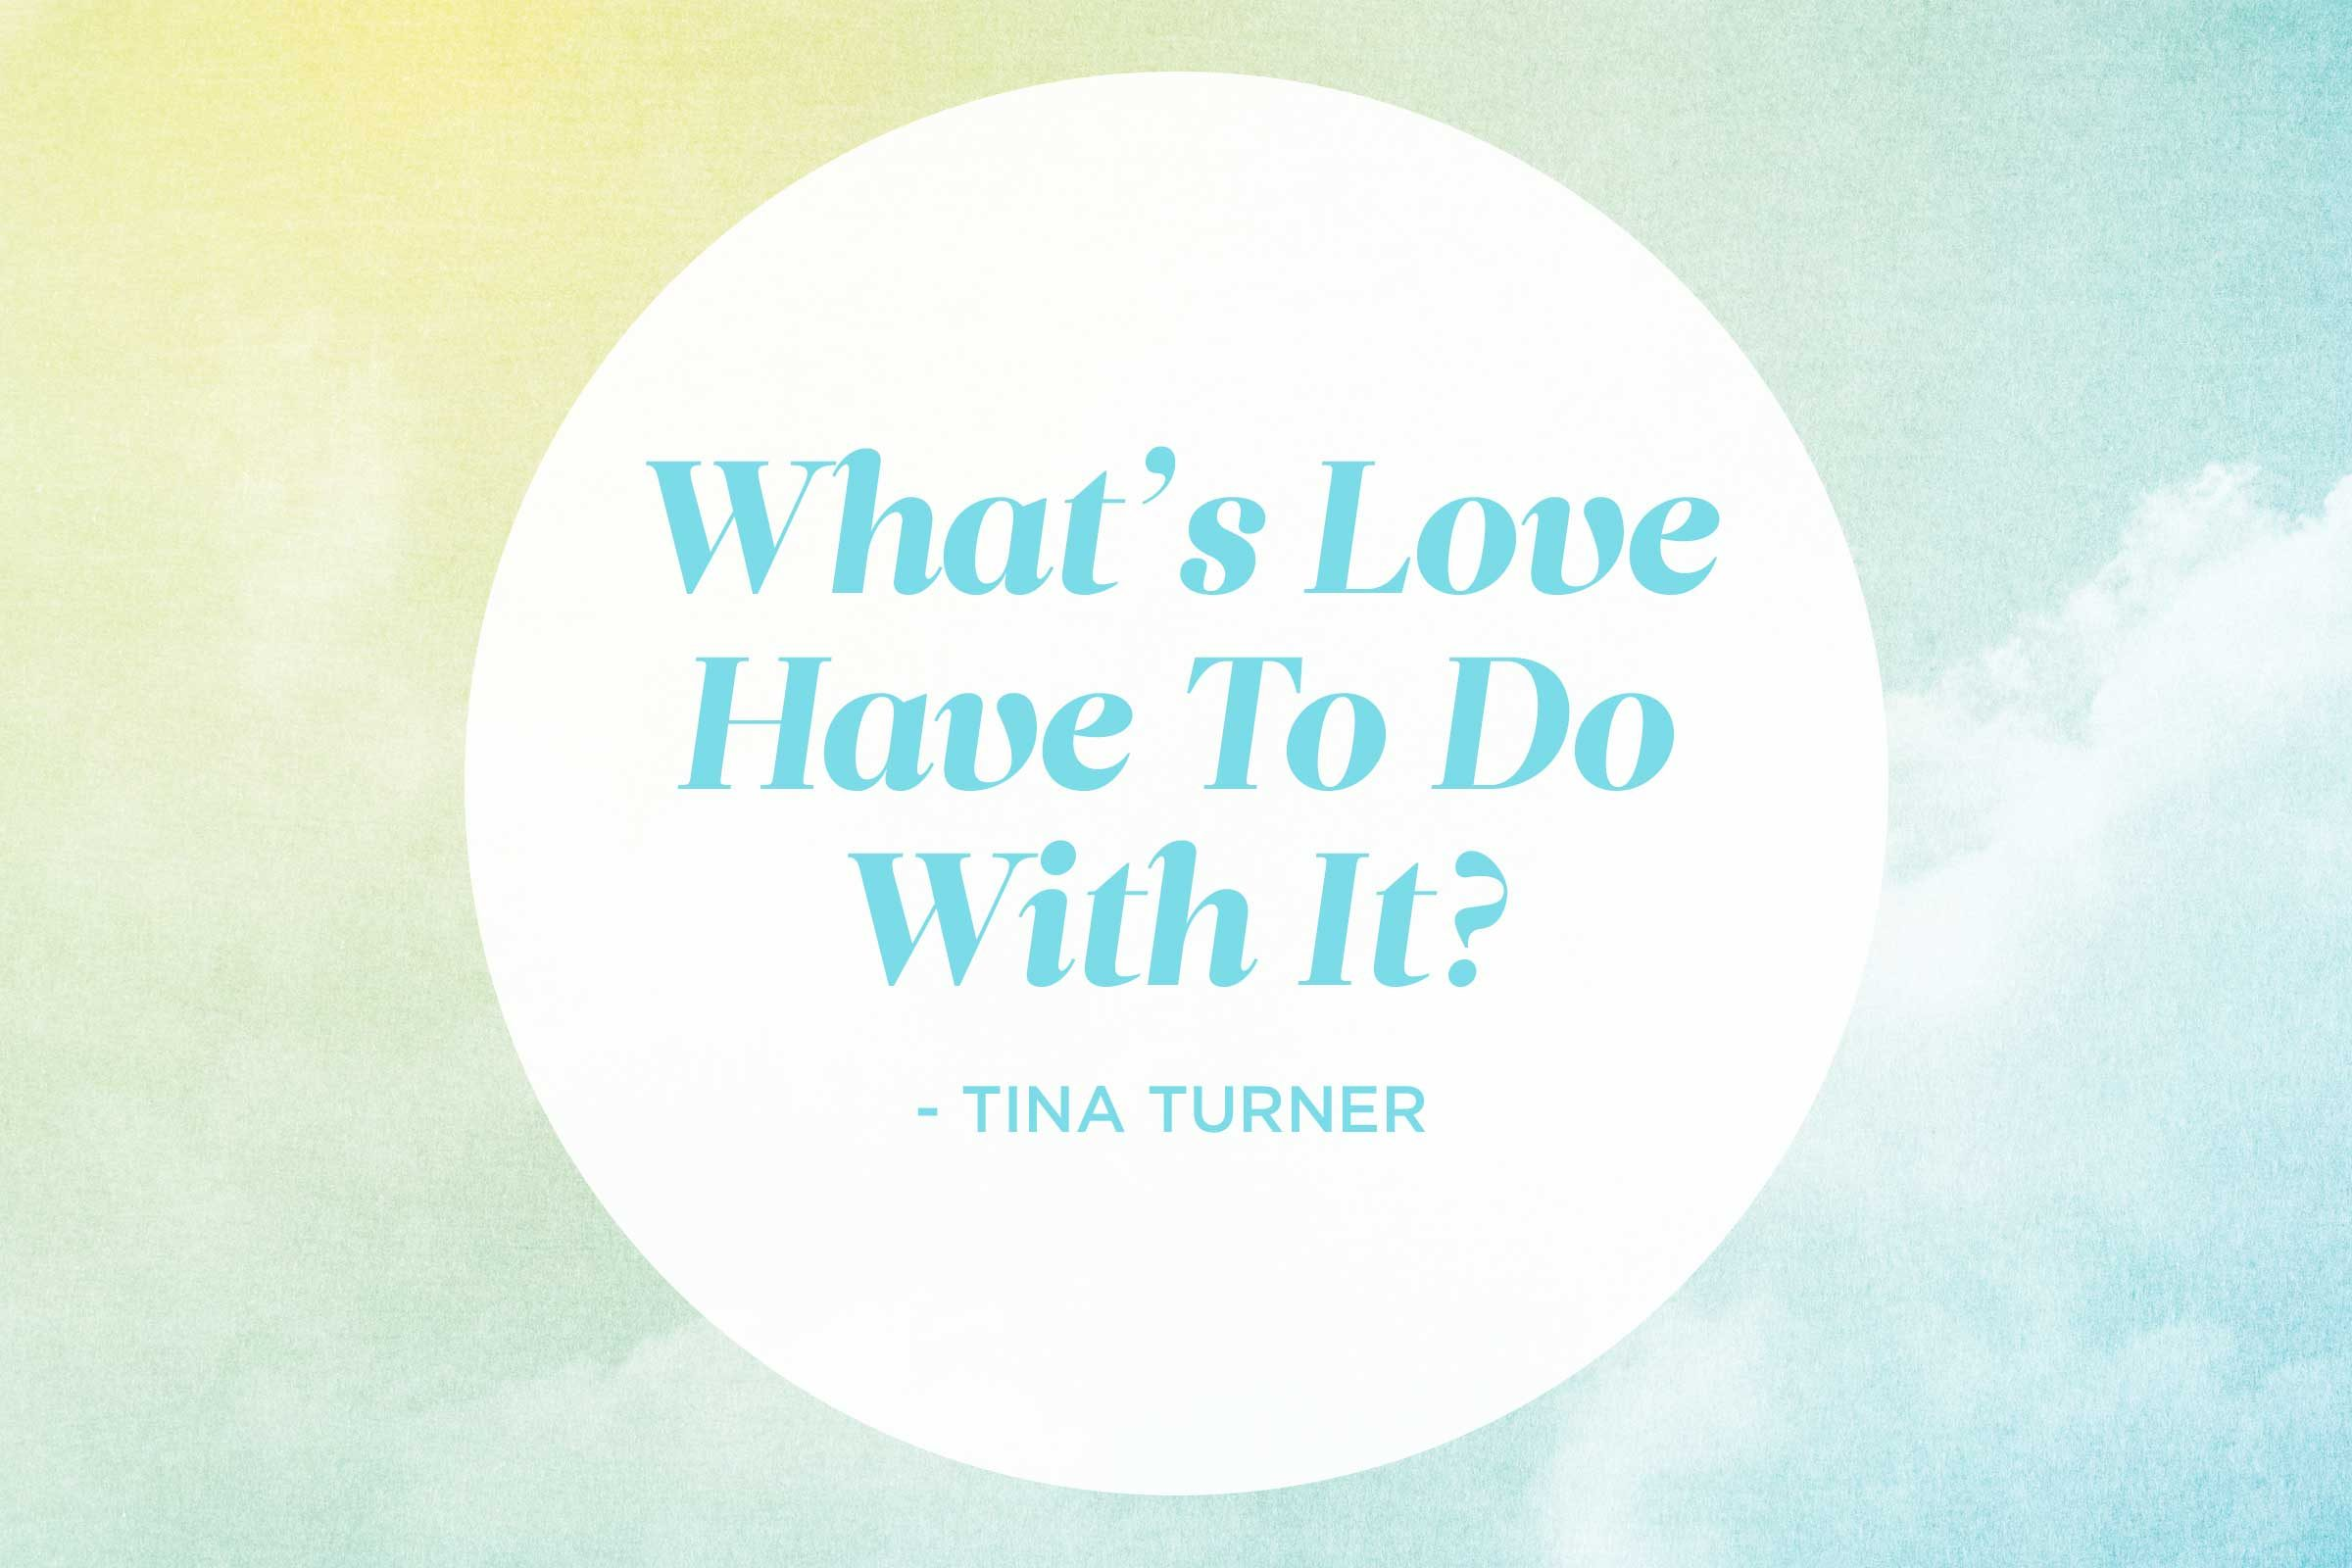 'What's Love Got To Do With It?' by Tina Turner